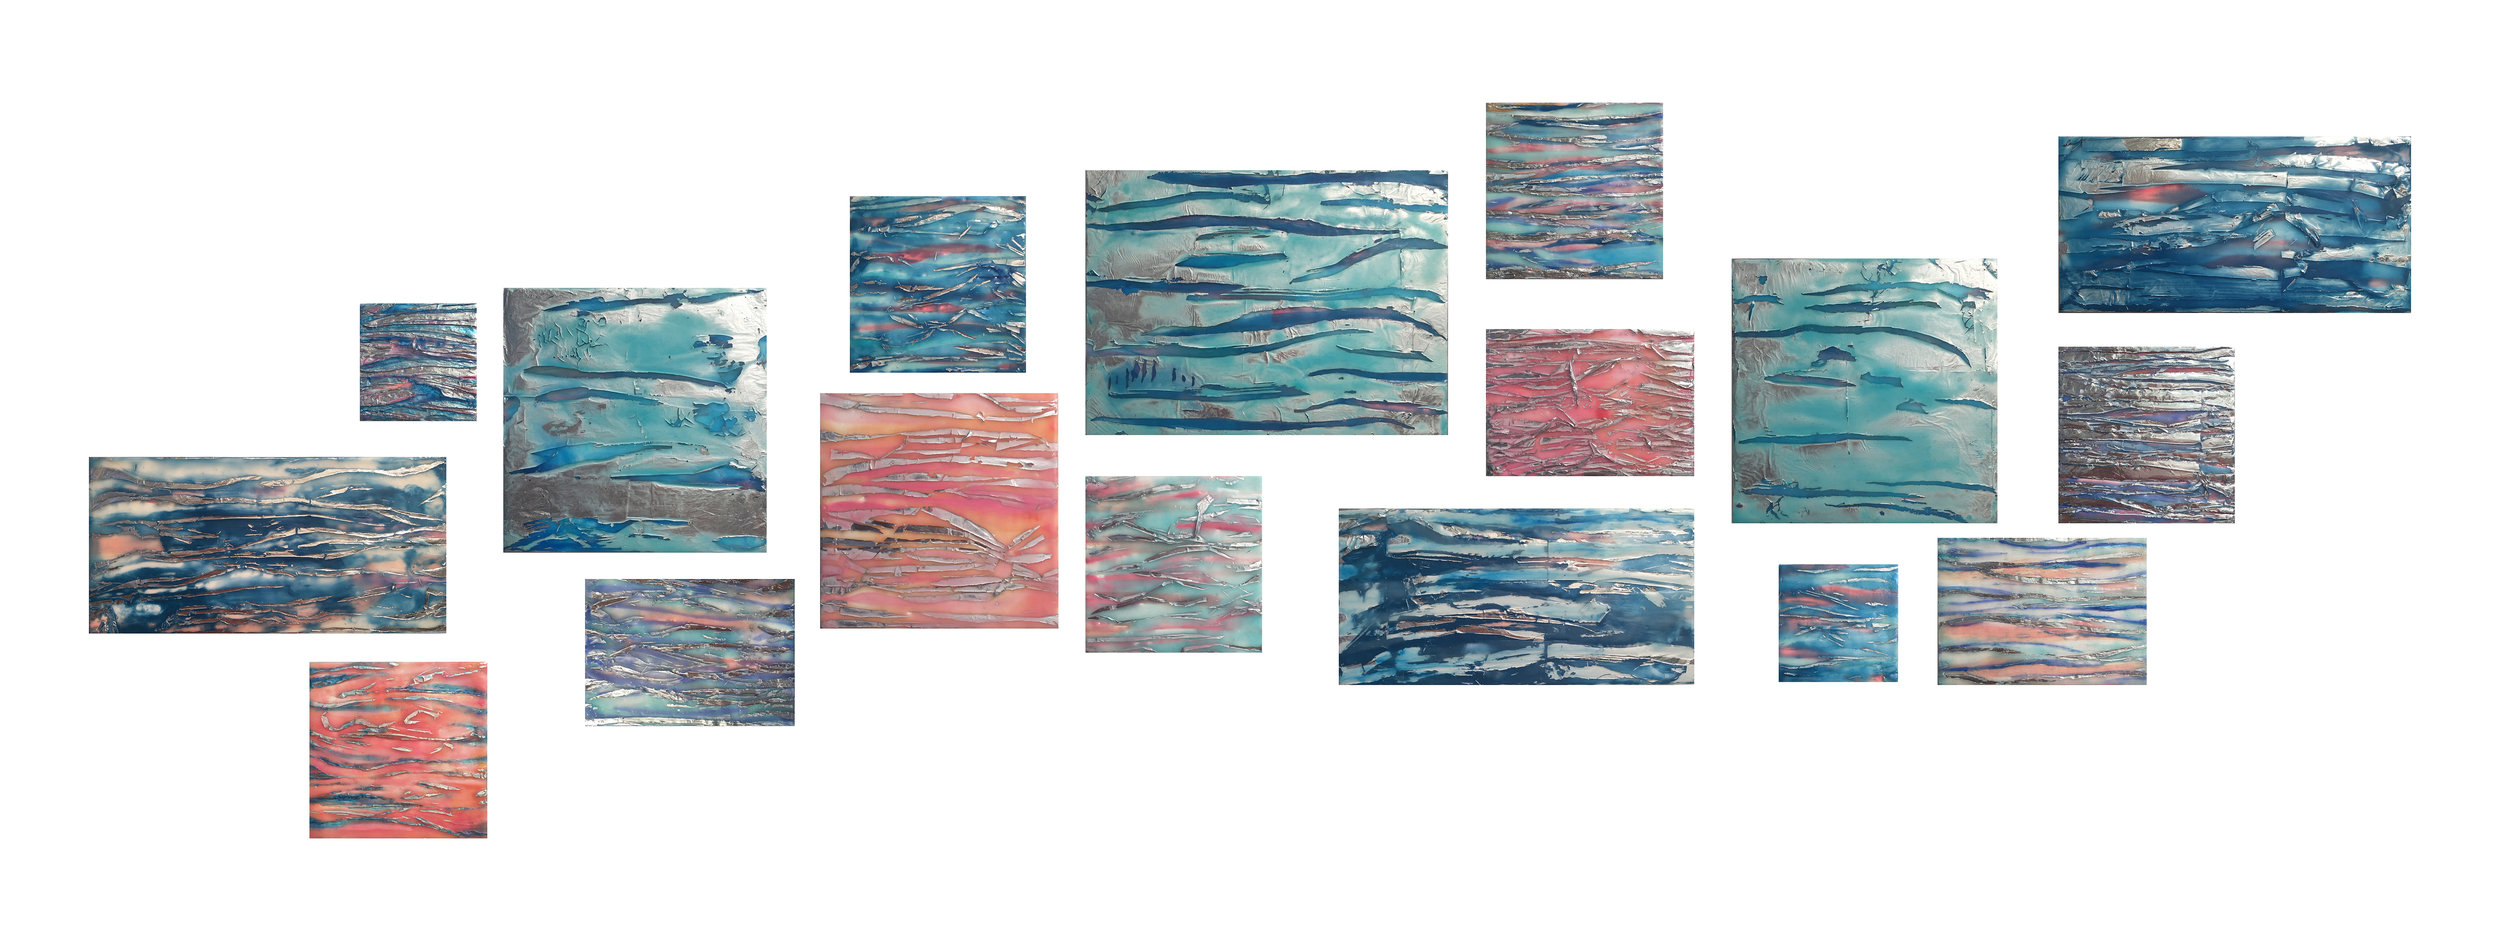 "Maggie Simonelli   River, Flow   2019 Encaustic, CHANEL  Quiet Revolution  eyeshadow, Japanese glass pigments, Japanese coral, aluminum leaf, pigments and water: Hudson River on wood panels. Total composition: 24"" x 78"" x 1 1/2""  (#3, 4 x 4"" , #9, #12 #16 each 6"" x 6"", #14 9"" x 9"" sold)"